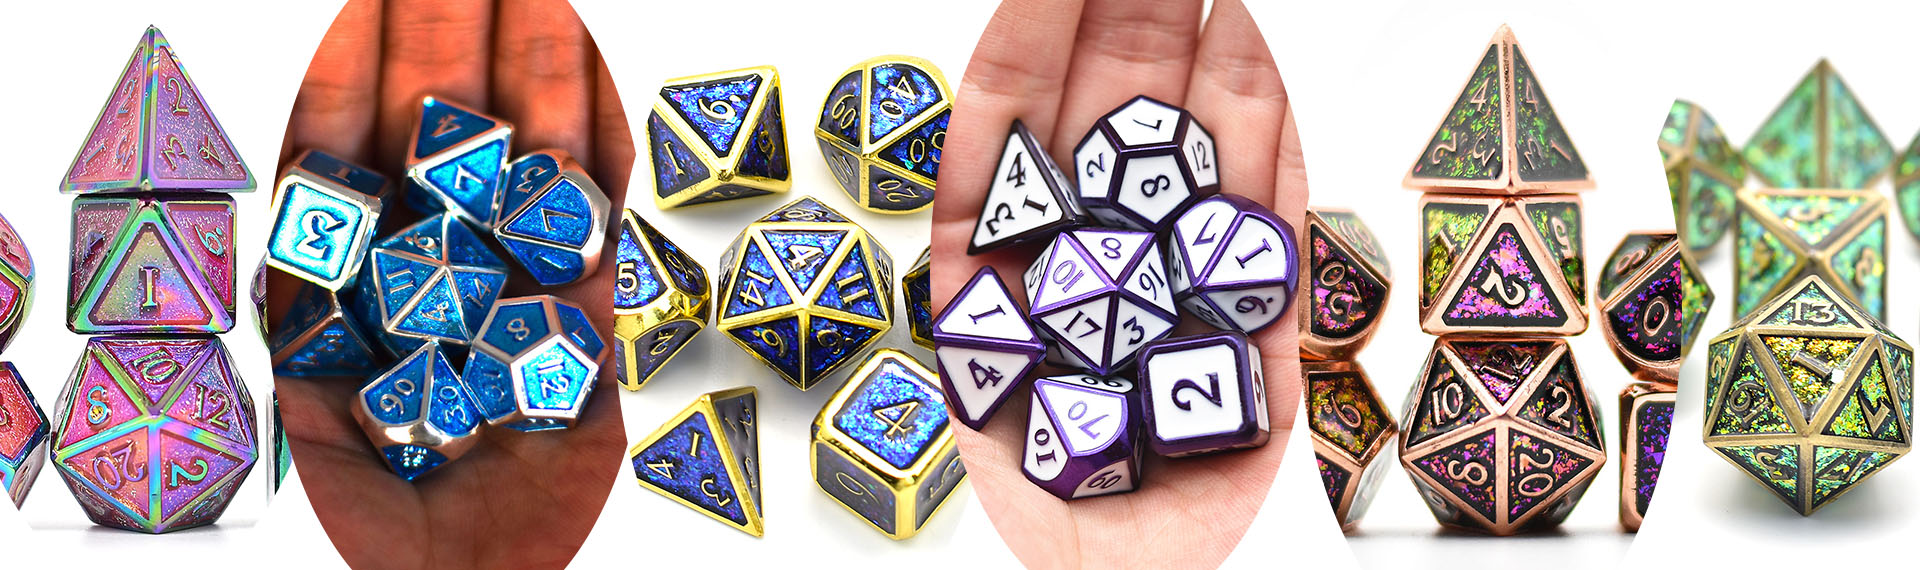 New Metal dices